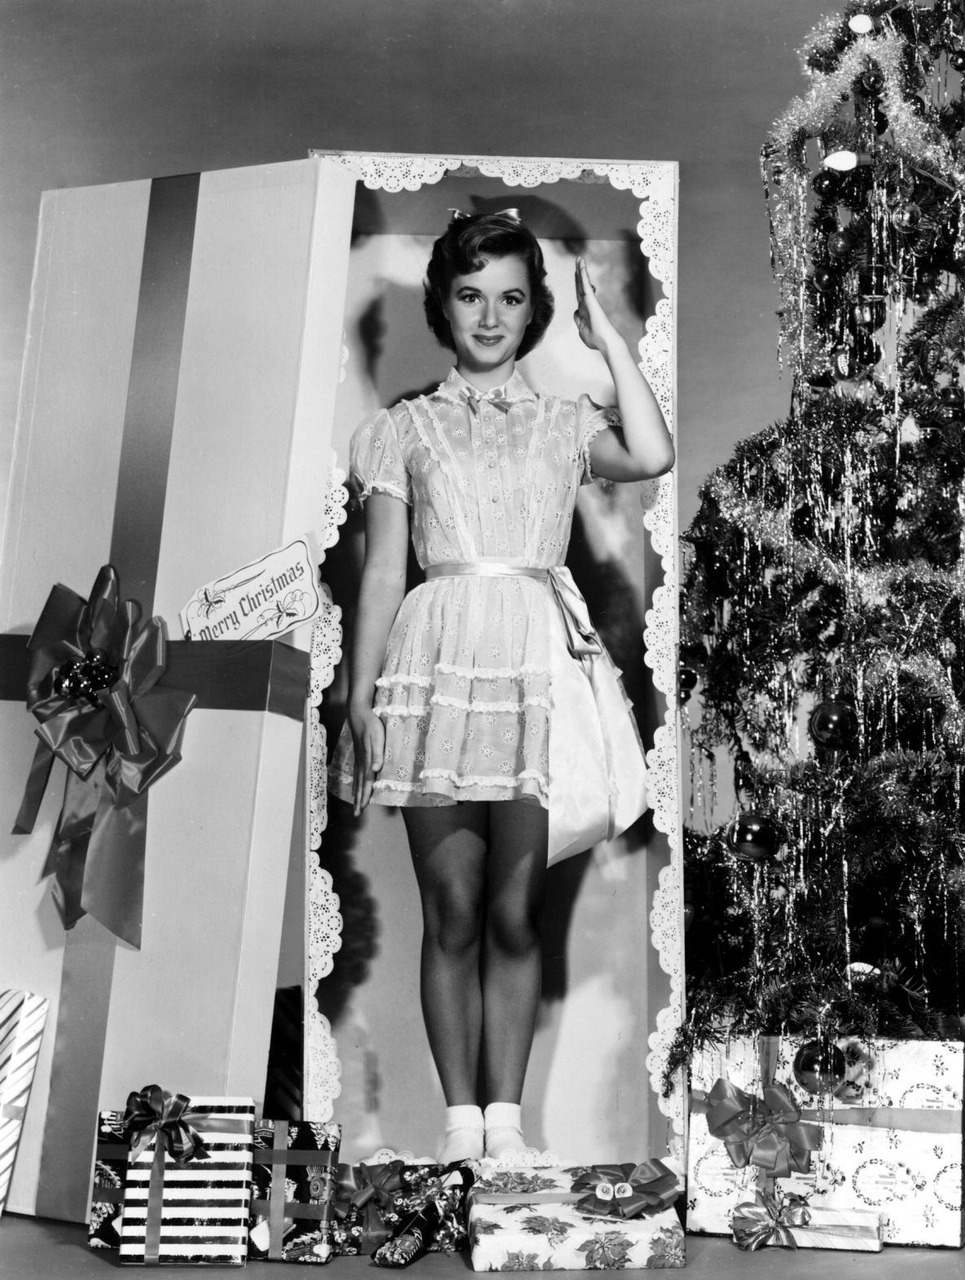 Vintage Movie Stars Pinterest Christmas | Pyytzm.mynewyearinfo.site